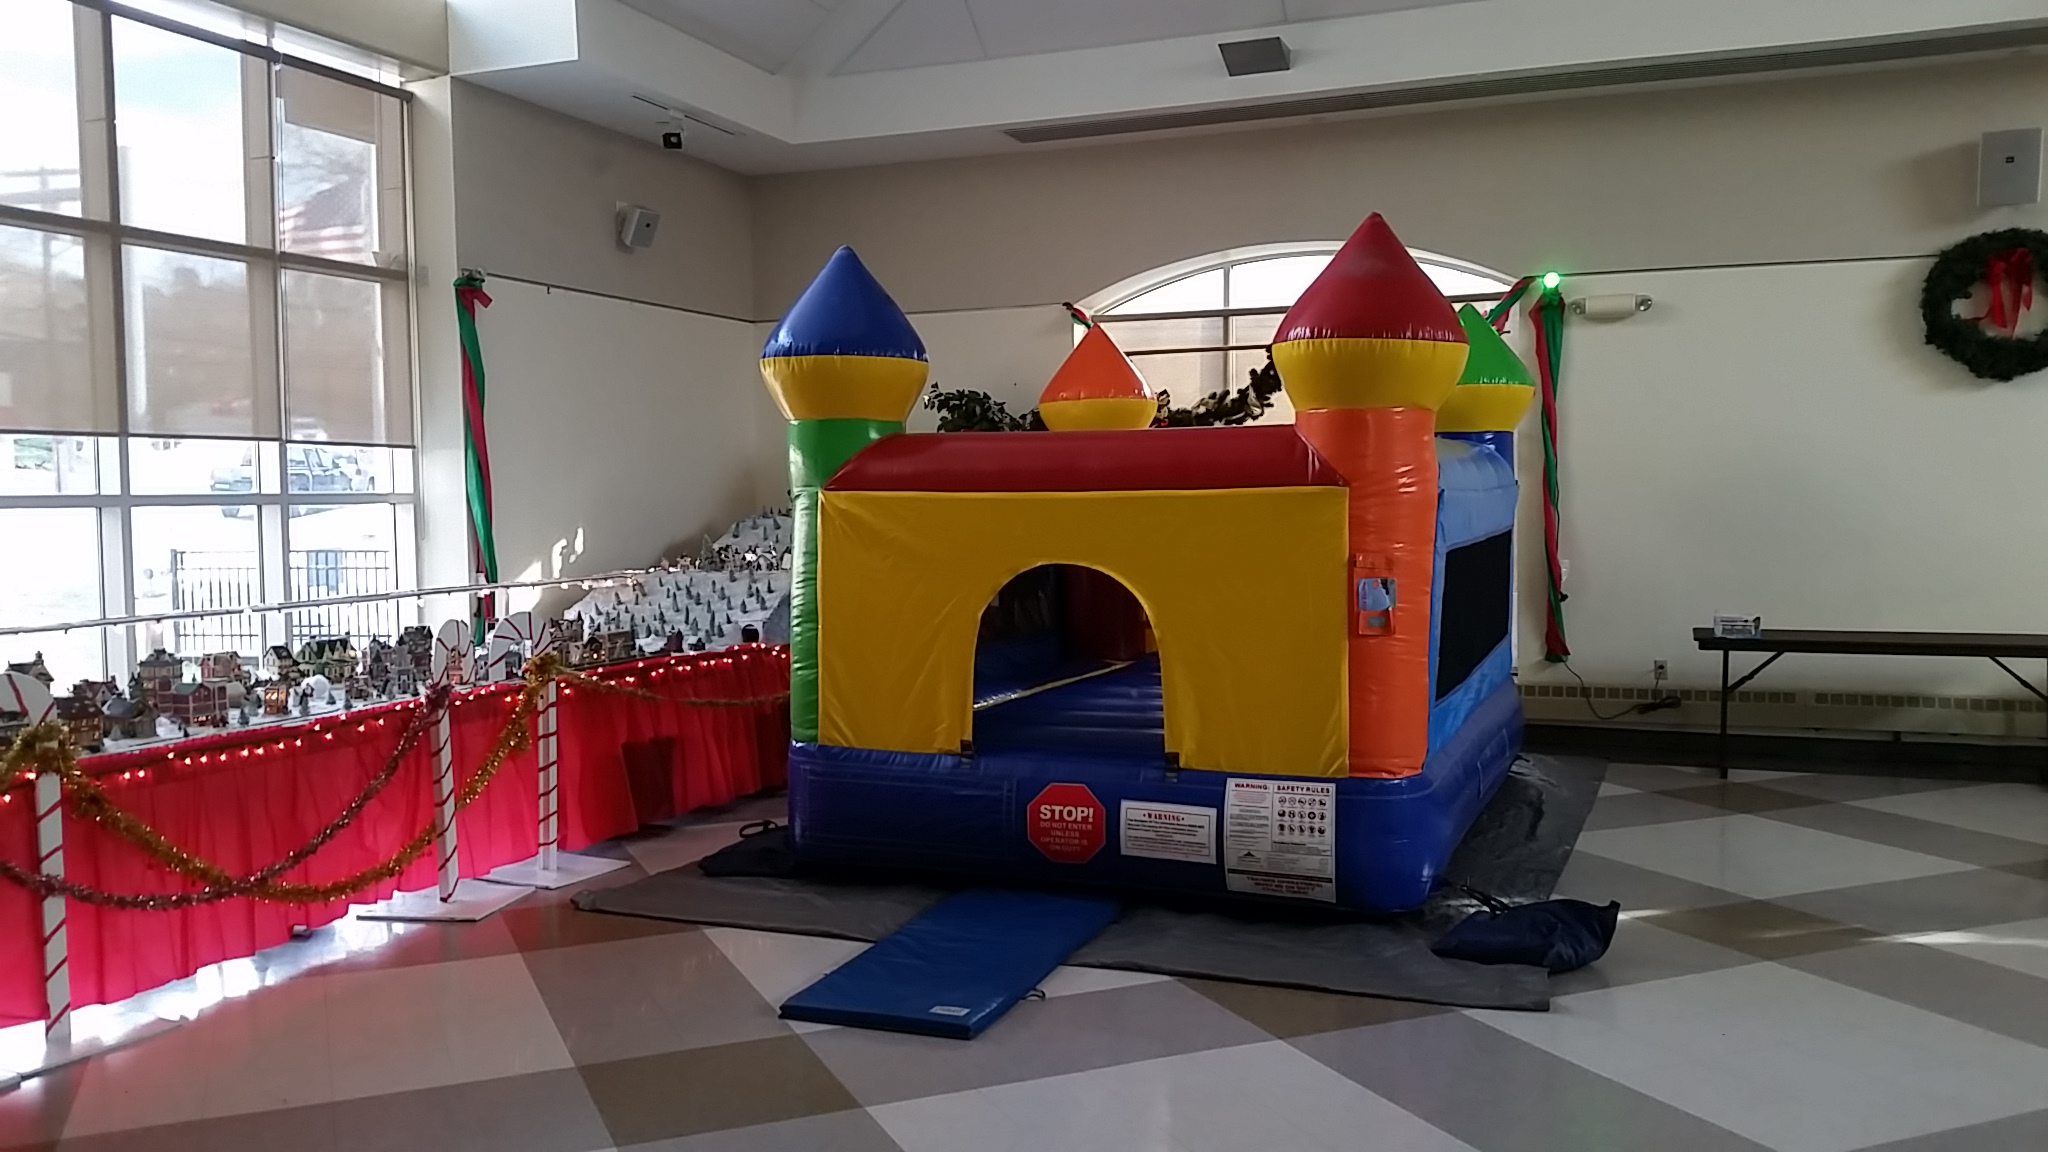 Bounce house rentals in Yonkers NY